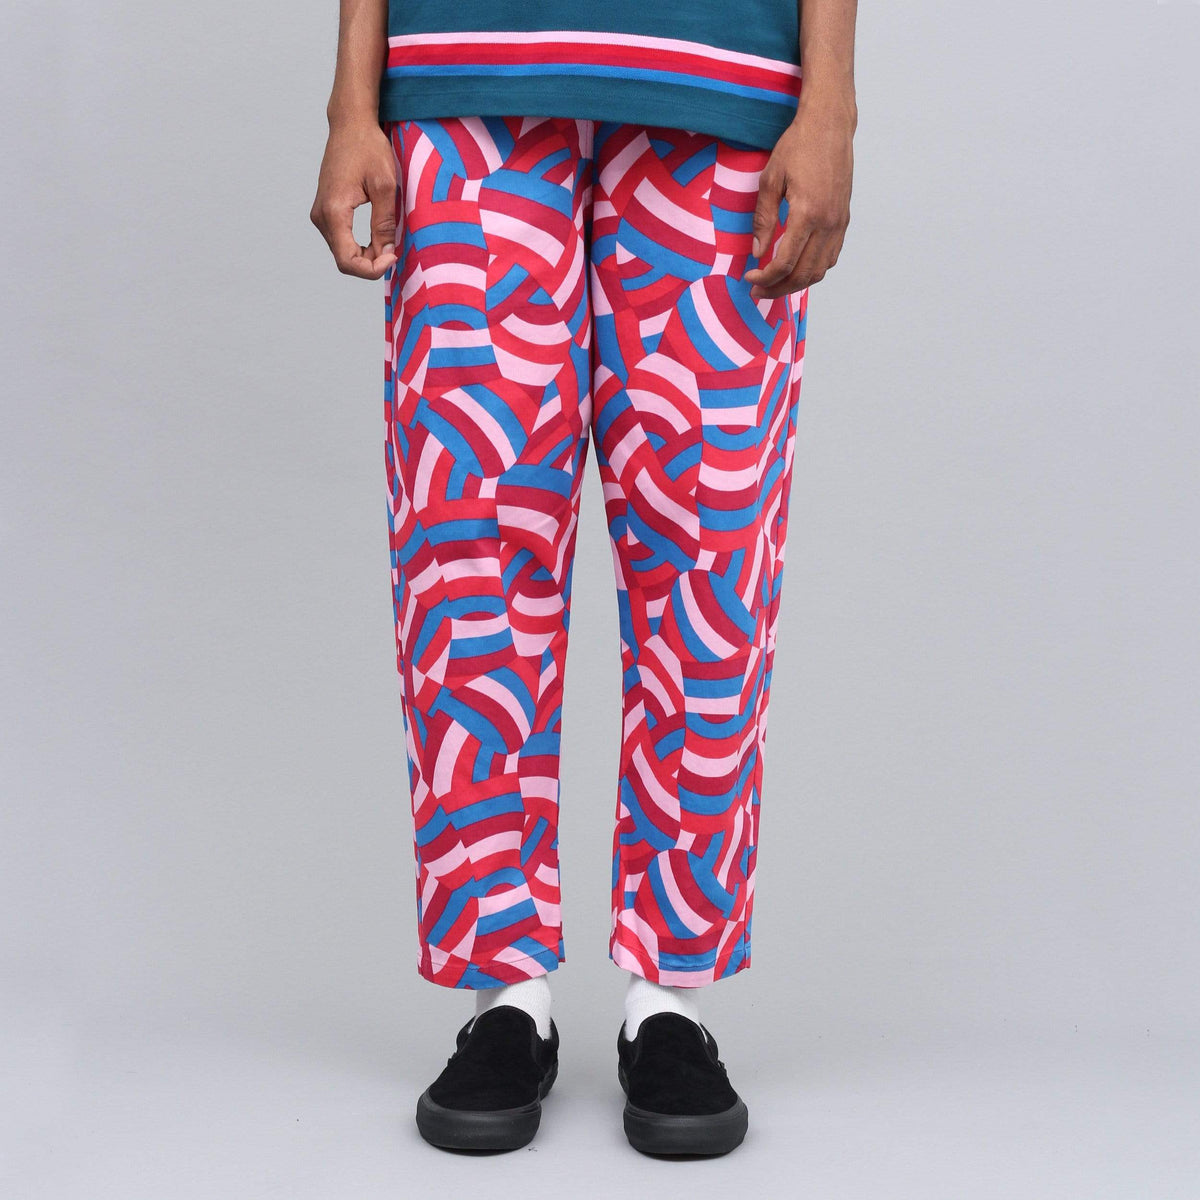 vantaggio Sindaco scansione  Nike SB X Parra QS Pants Gym Red / Pink Rise / Military Blue – Slam City  Skates